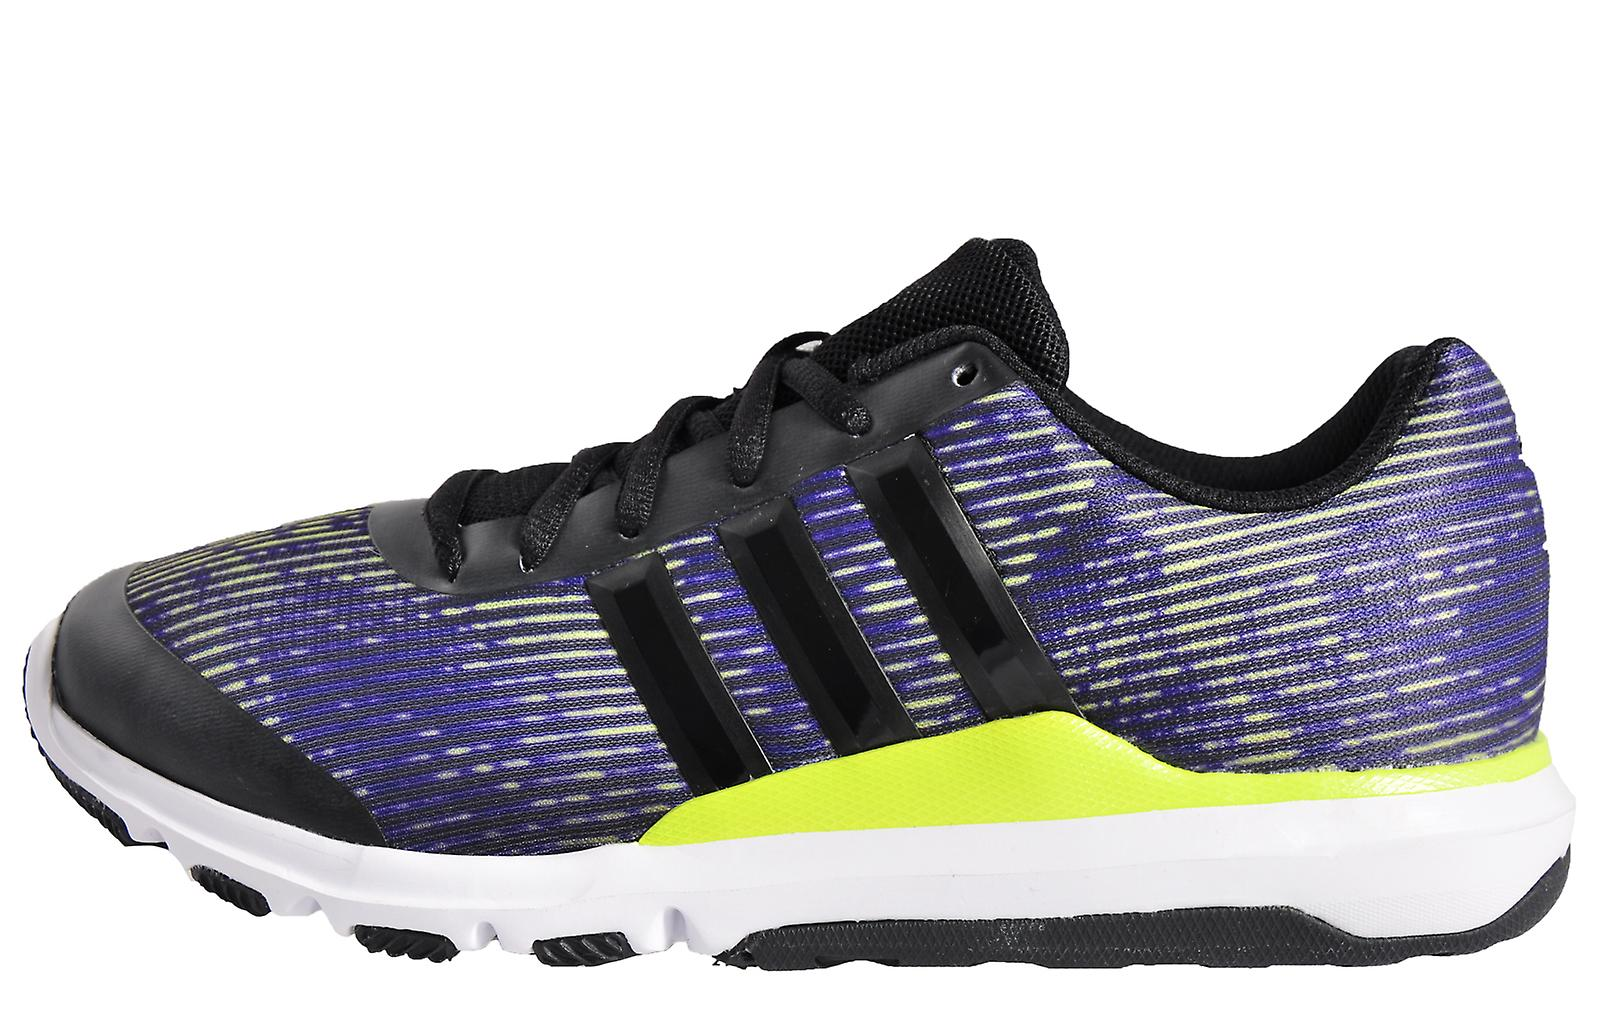 Adidas Adipure Primo Black / Purple / Lime